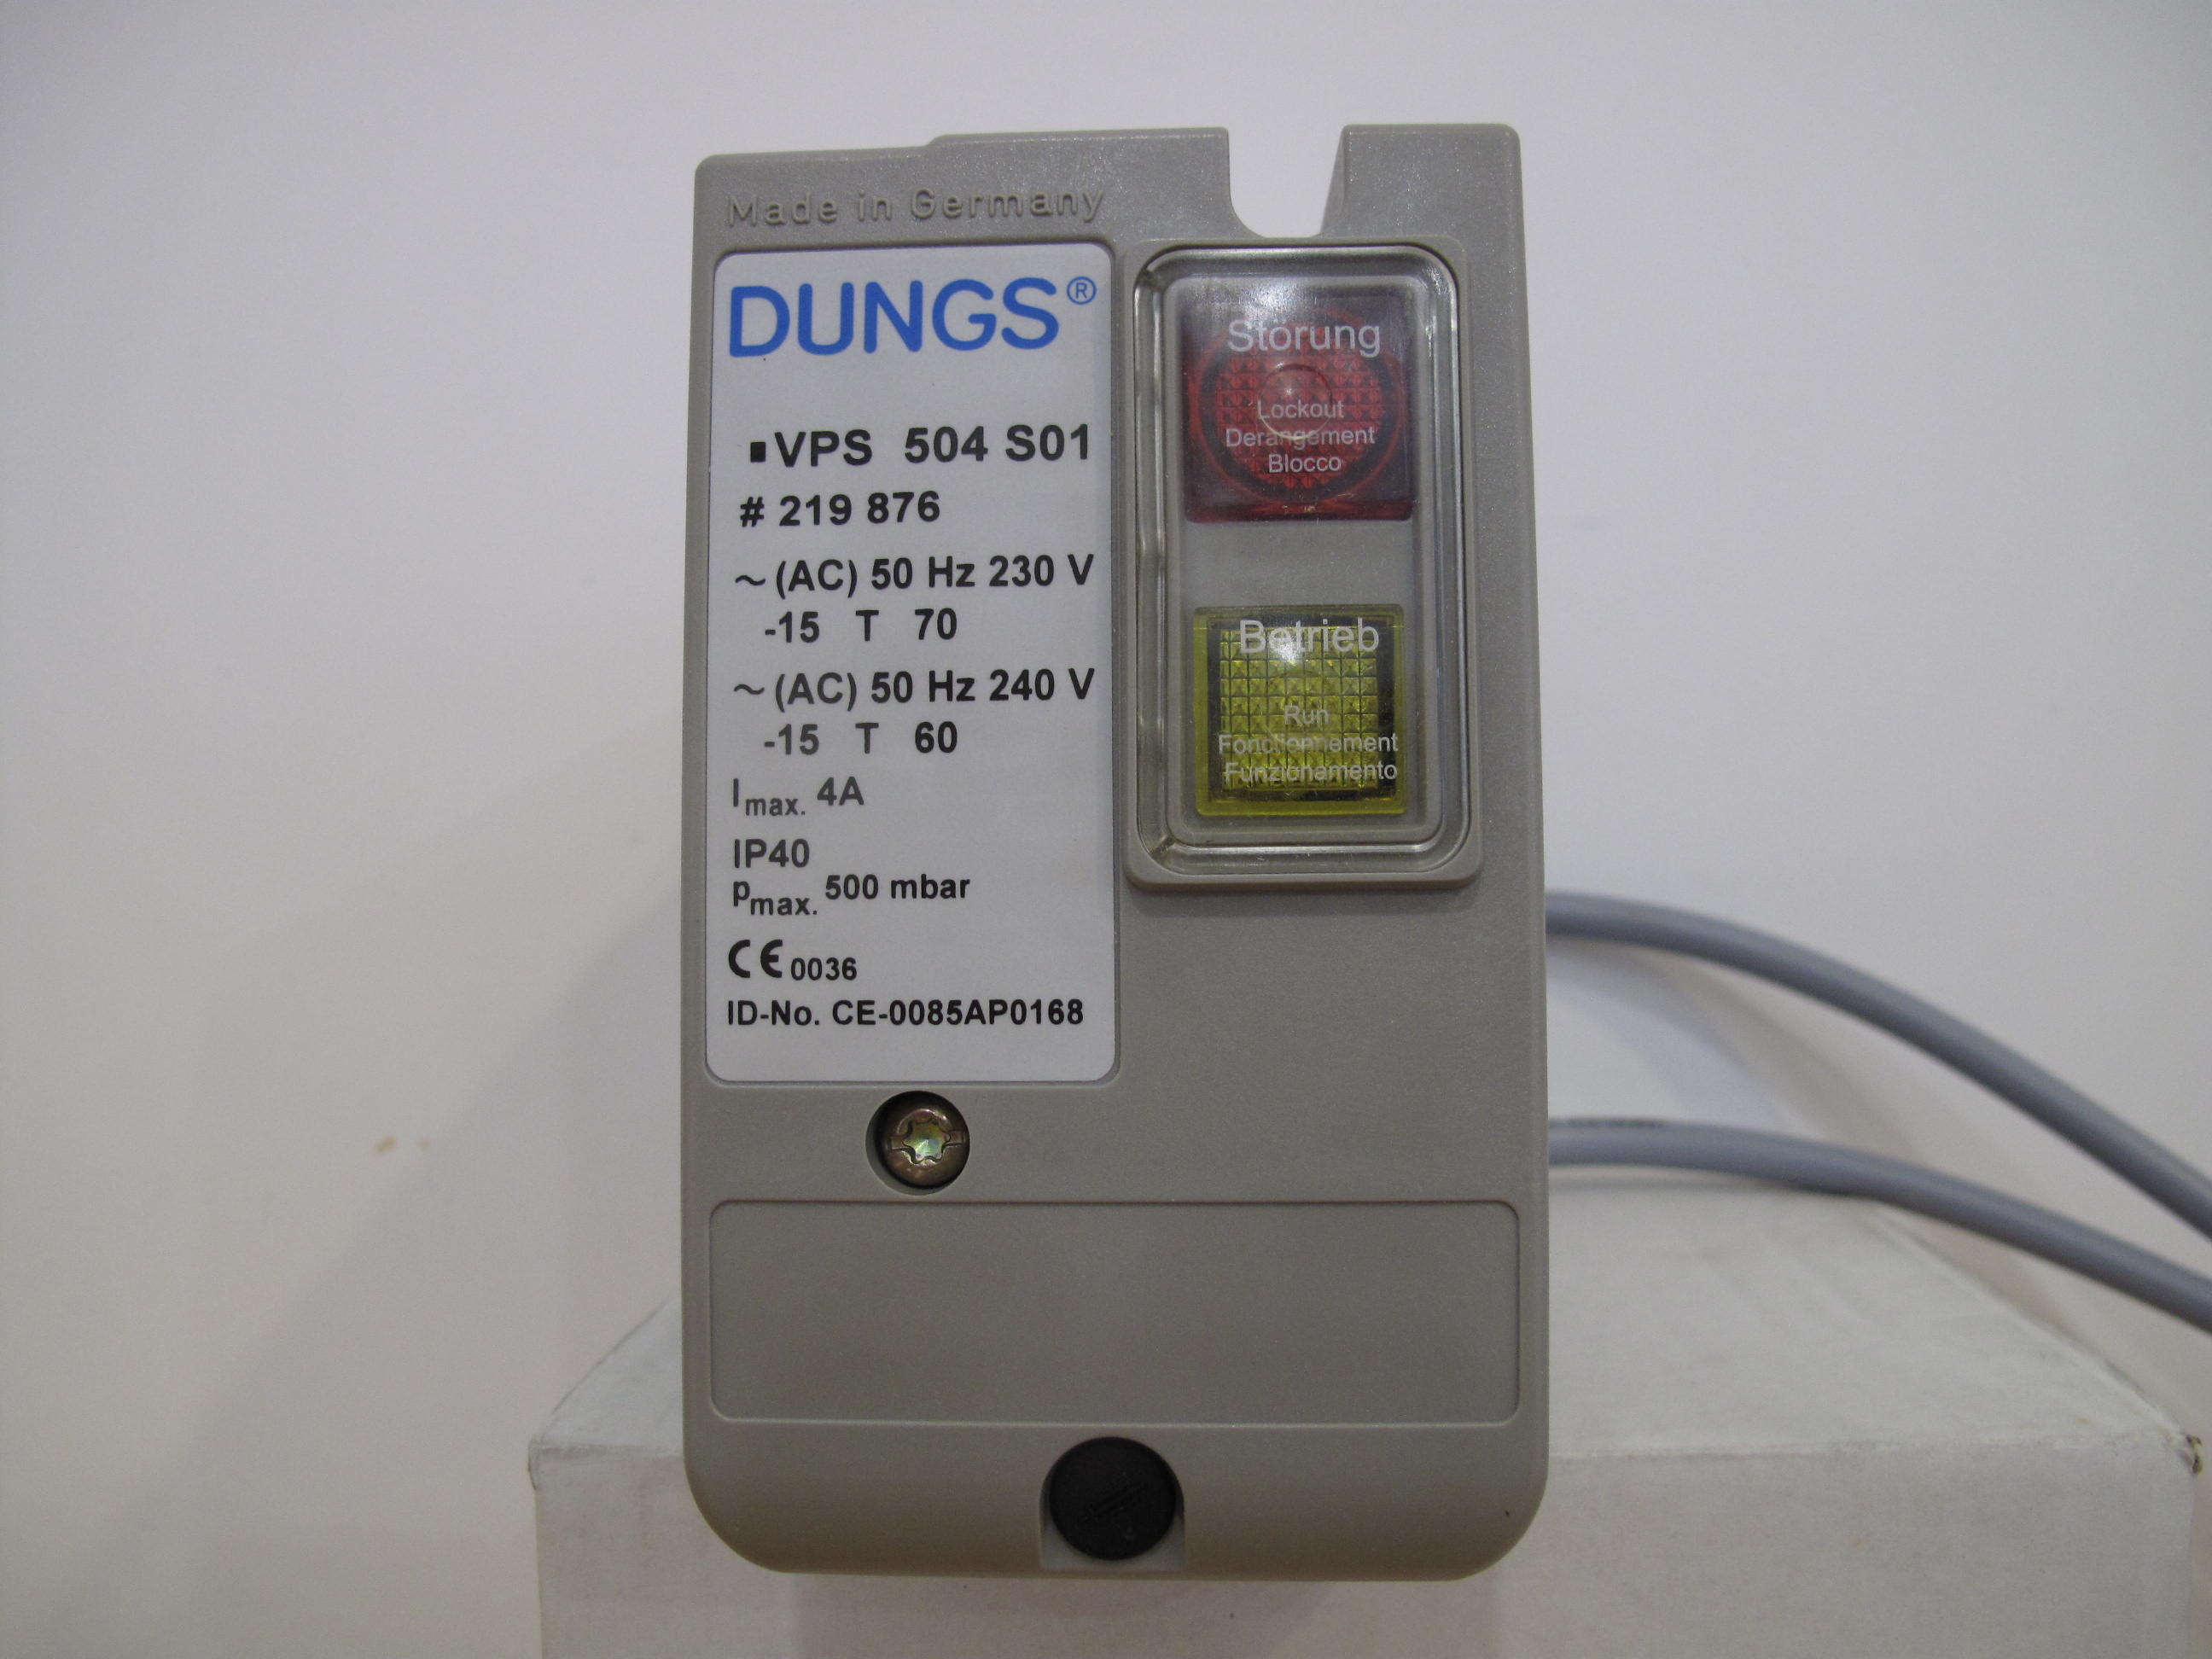 VPS 504 S01 DUNGS